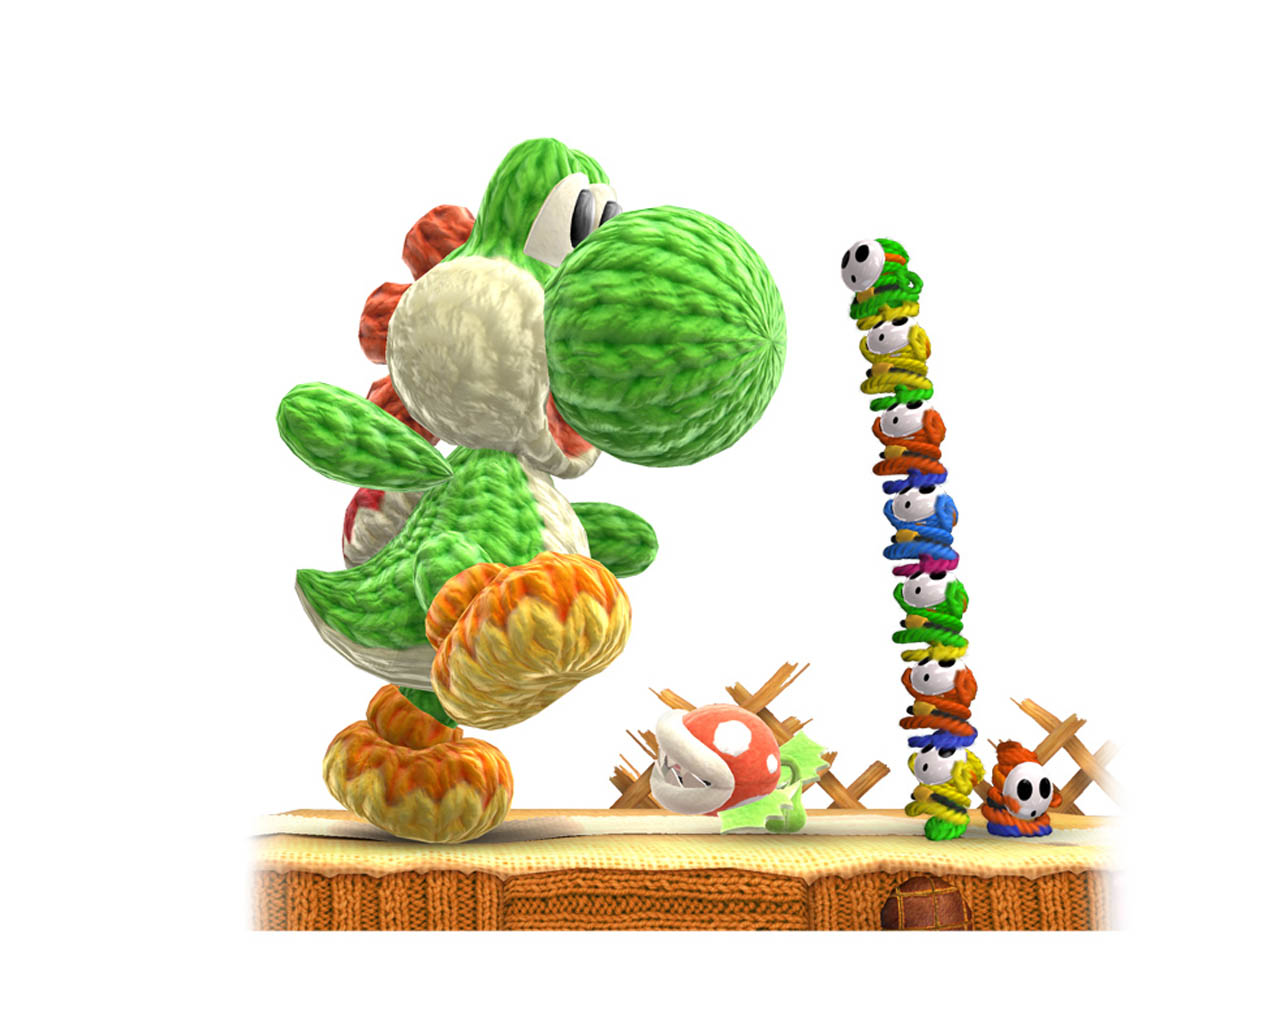 Yoshis Woolly World for Wii U  Nintendo Game Details